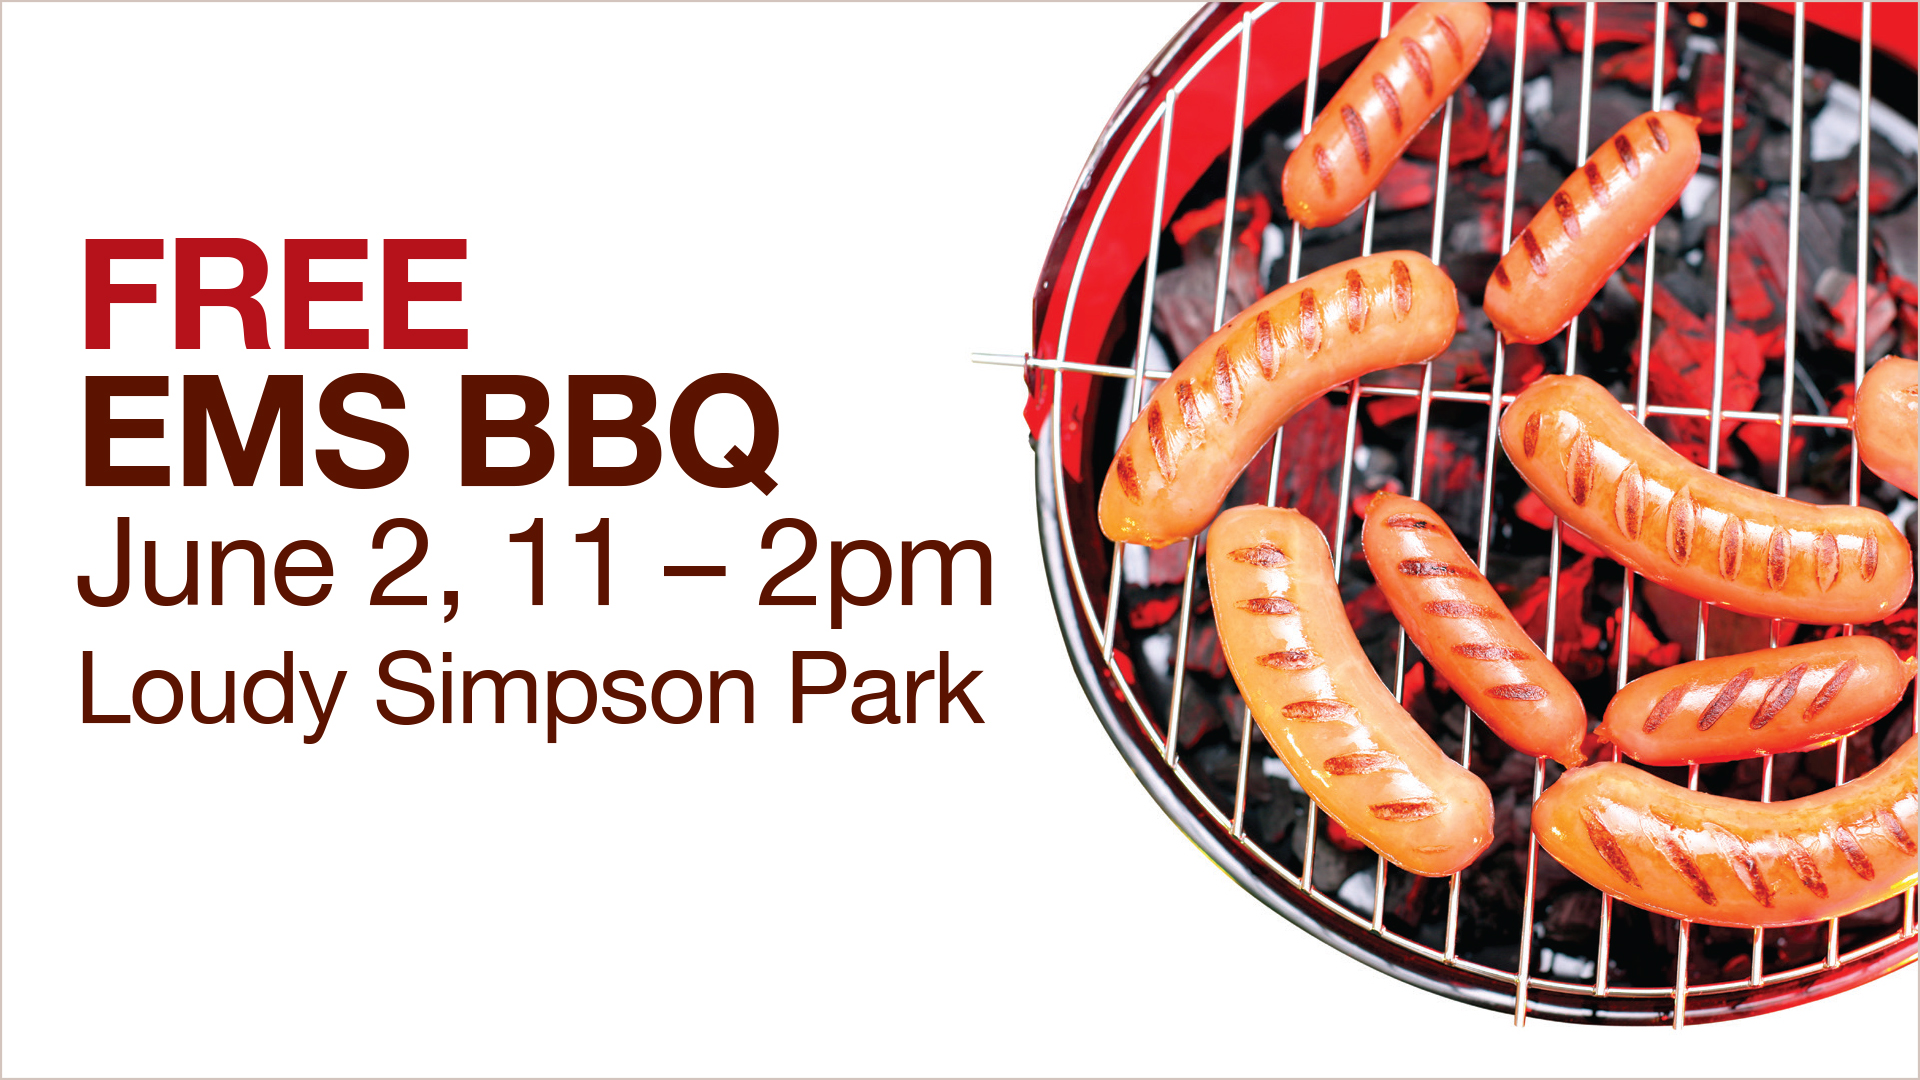 Free EMS BBQ on June 2